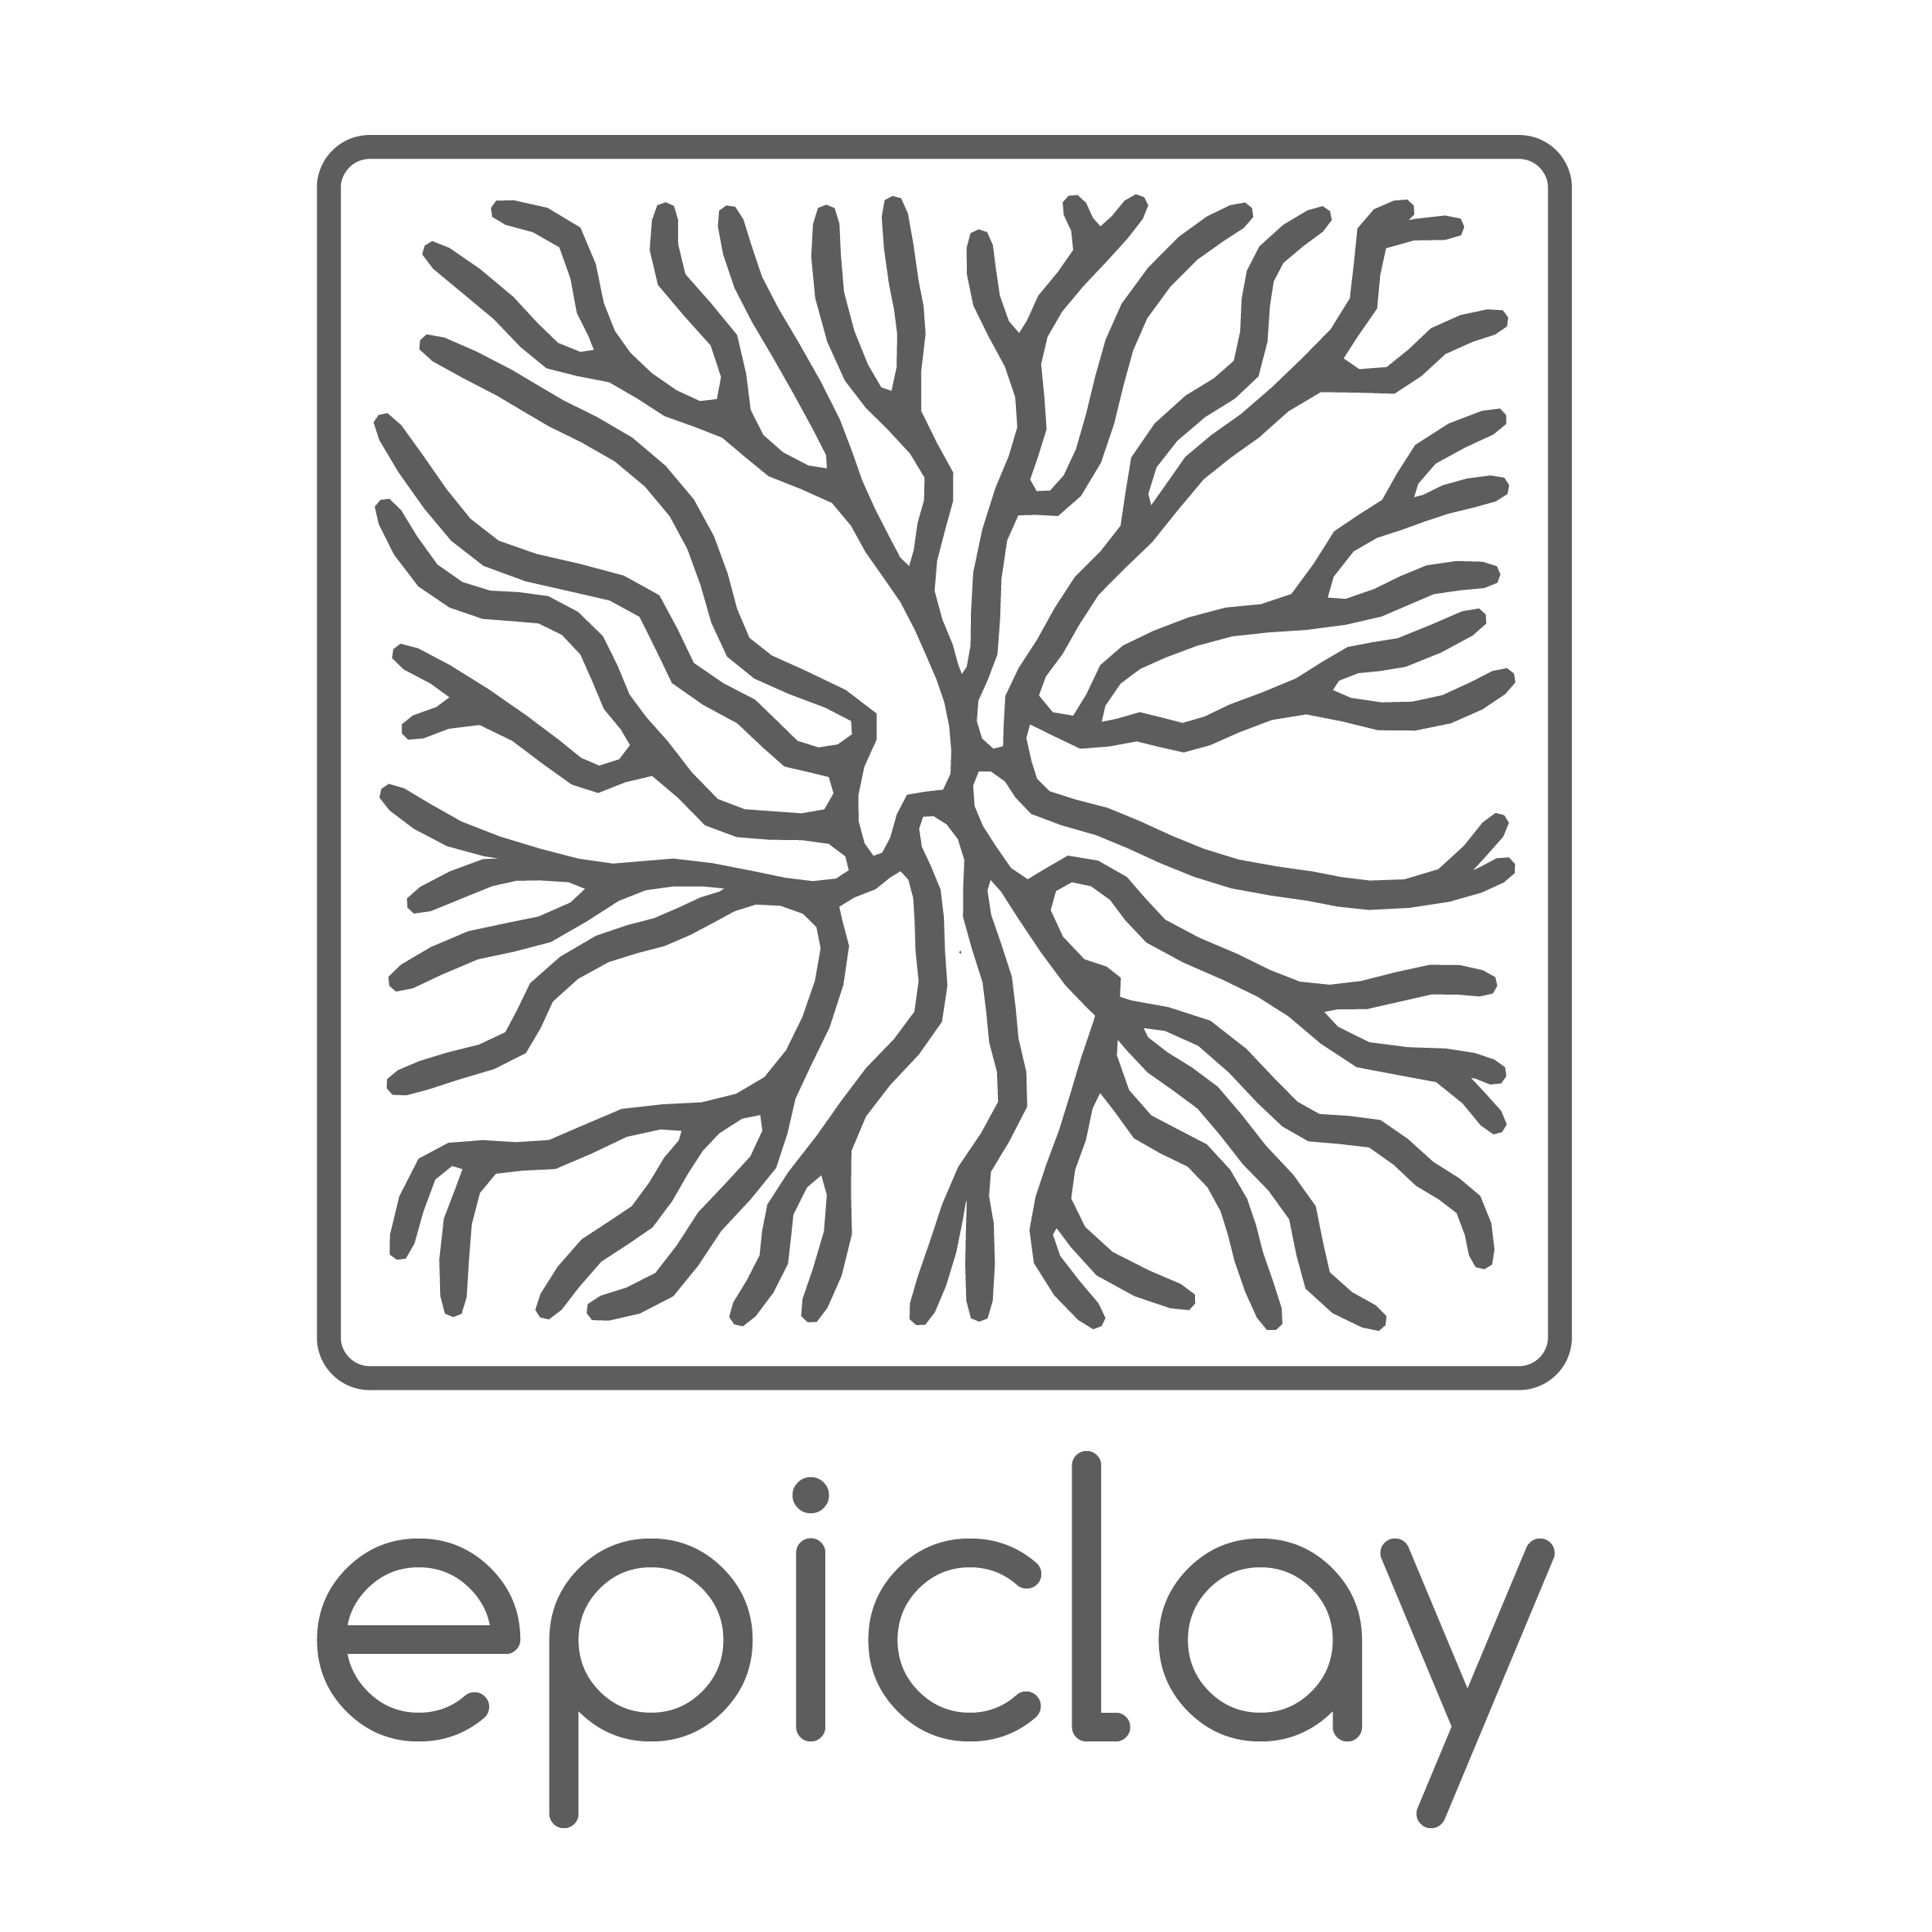 epiclay